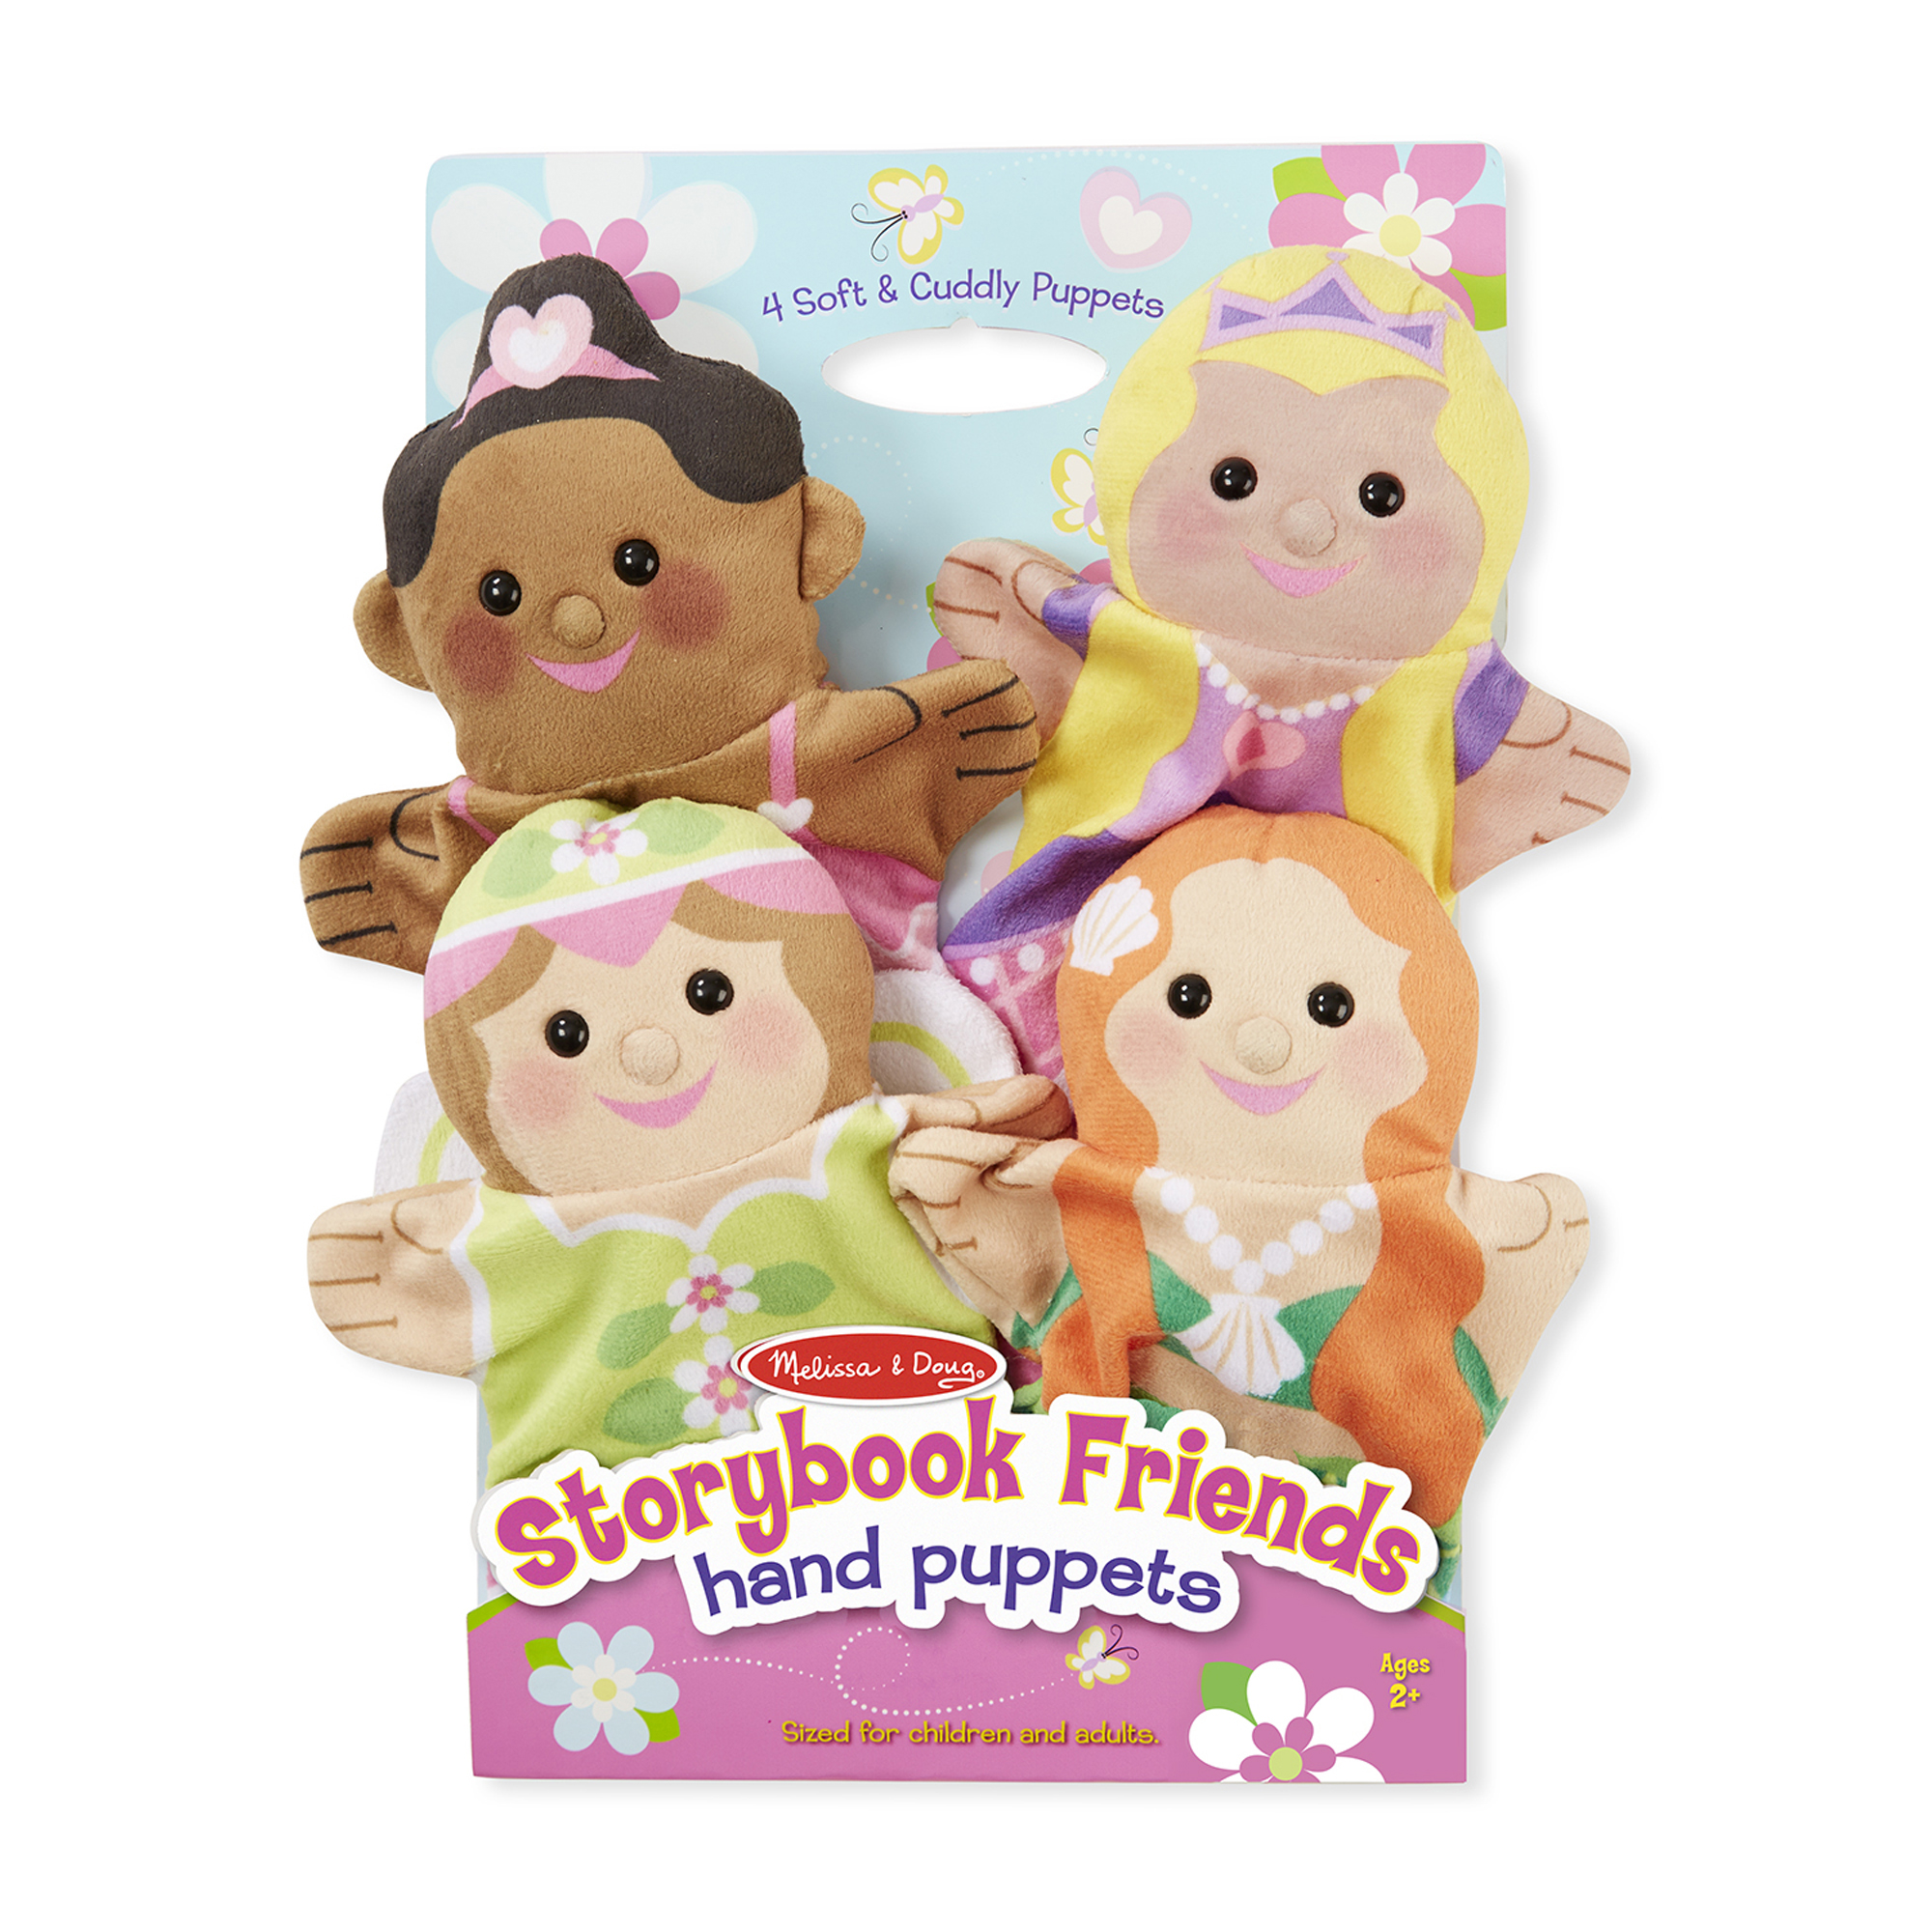 This four-piece hand-puppet set includes a beautiful collection of friendly characters! Designed to help children and caregivers role-play together in a sweet and simple way, the princess, fairy, mermaid, and ballerina are sure to inspire countless creative stories and amazing imaginary adventures. The simple glove puppets fit children and adults and are easy to use, so even the littlest puppeteers can see exciting movement with very little skill - terrific for self-confidence, and also an invaluable booster for motor skills, hand-eye coordination, communication skills, parent-child bonding, and so much more! Made with brightly patterned, washable fabrics and built to last, these soft and sweet hand puppets are sure to be go-to toys for yea